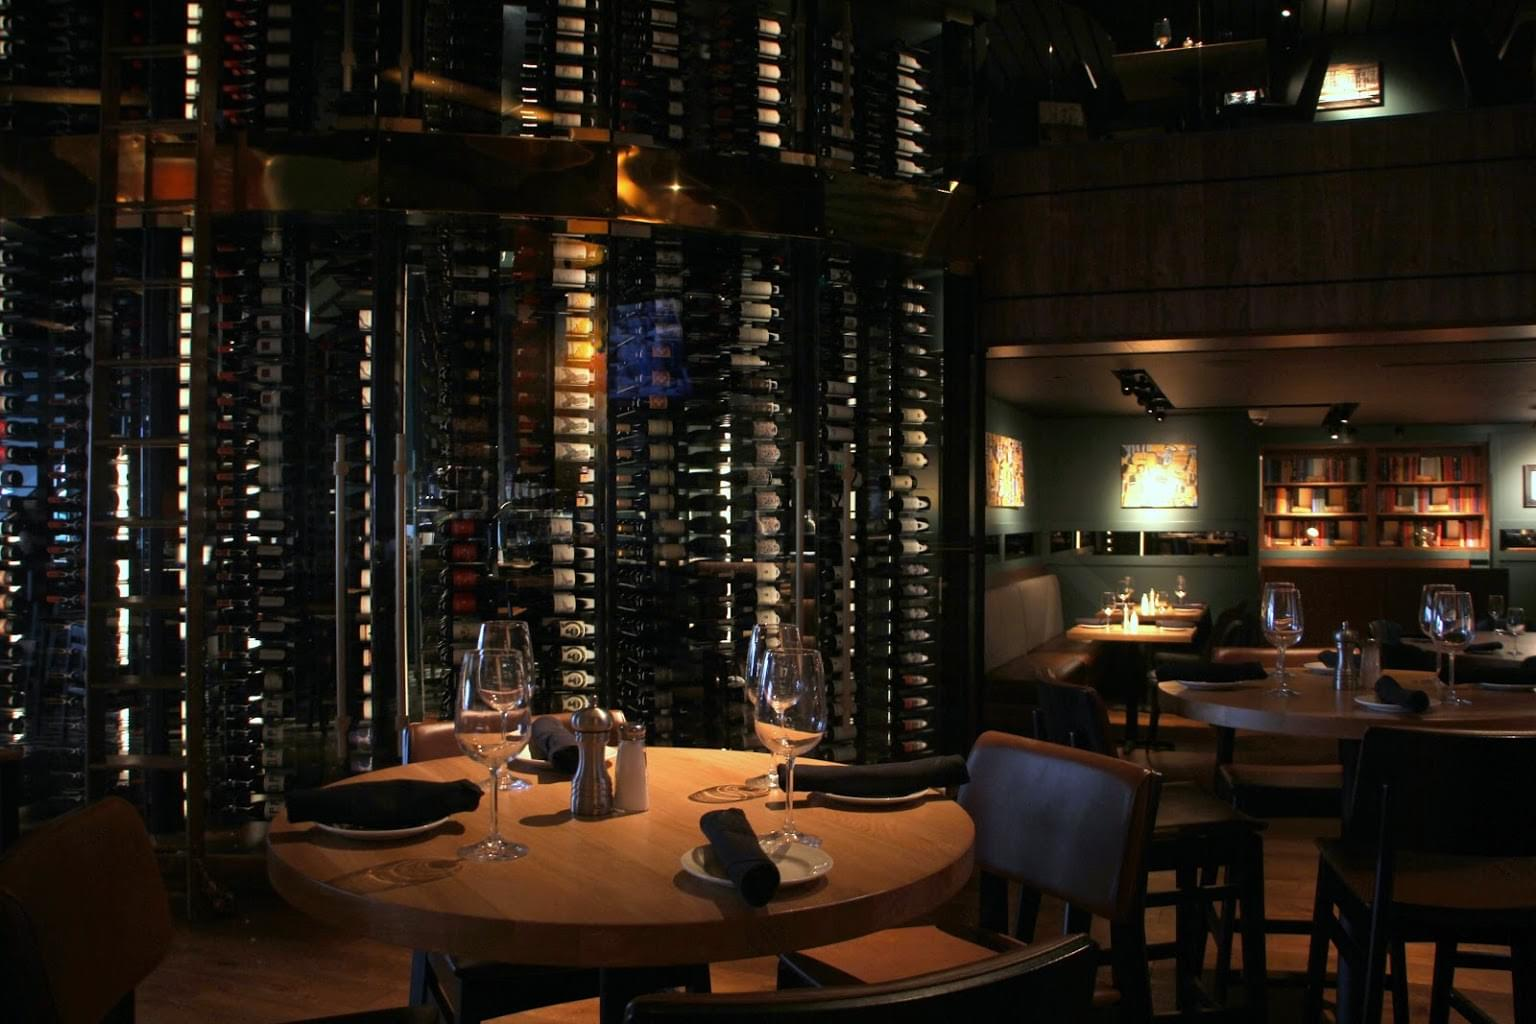 Del Frisco's Grille steak house in Philadelphia, PA dining table with wall of wines